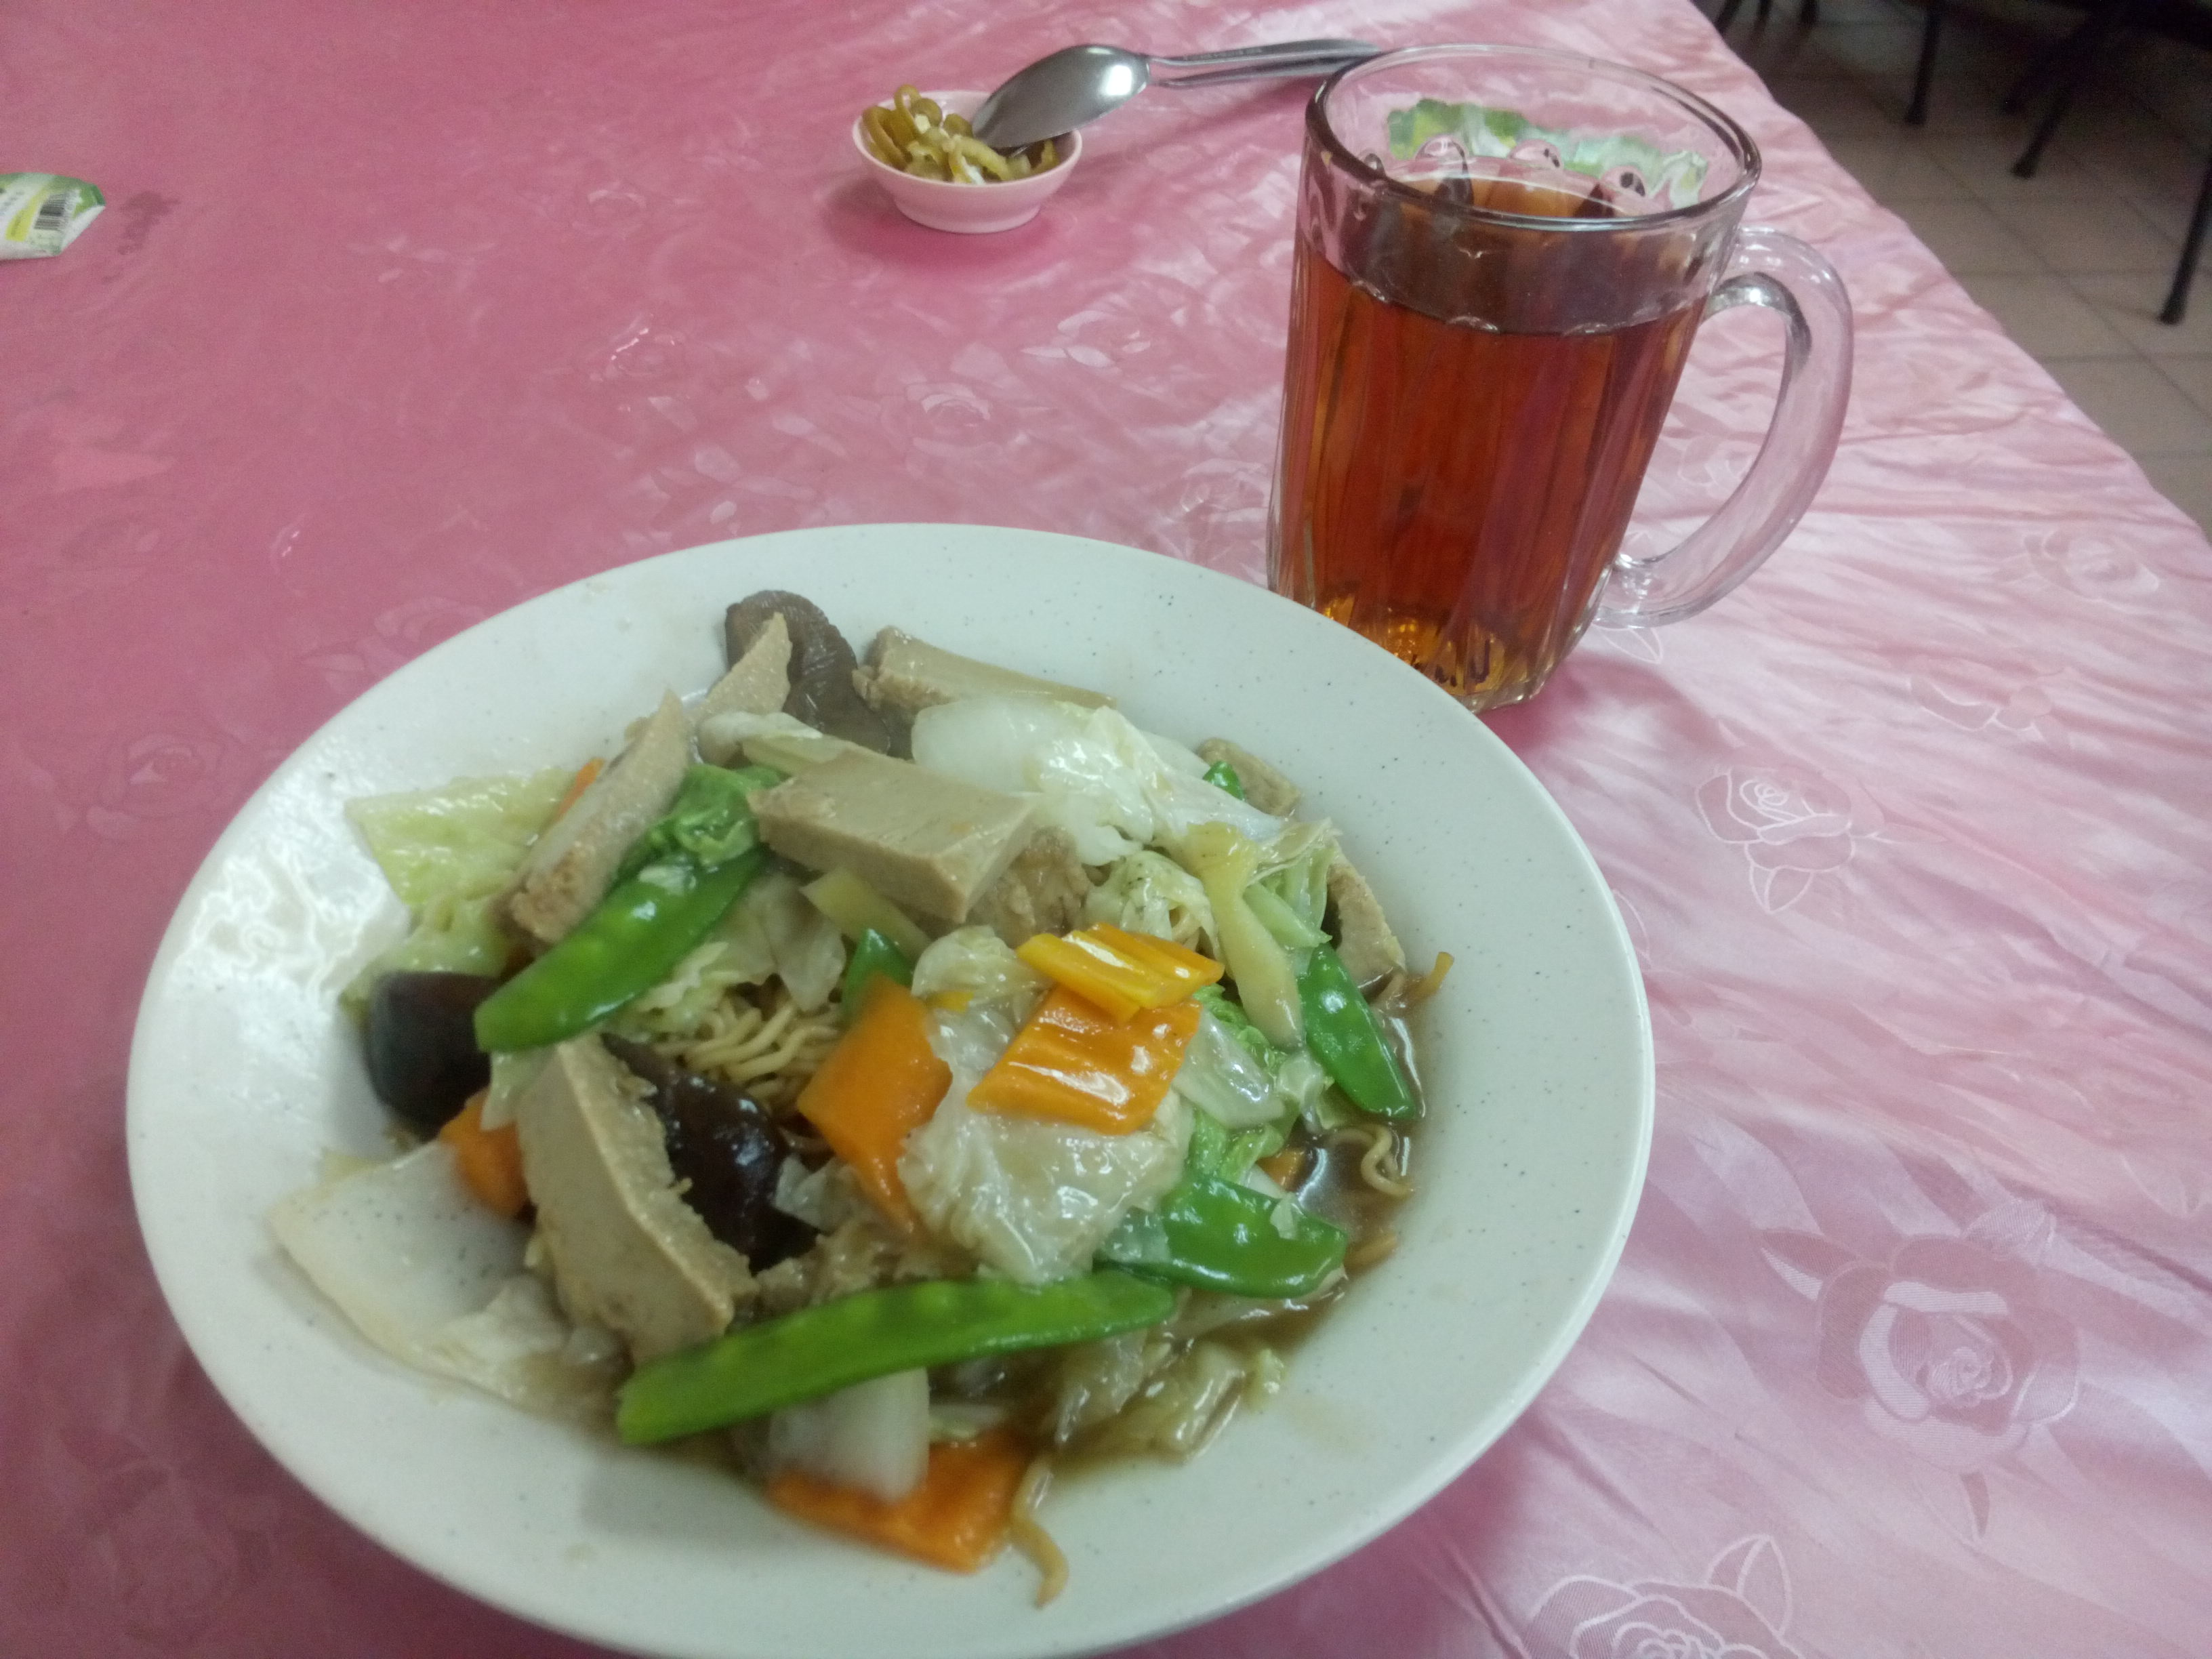 Noodles with vegetables and tofu, and tea in a glass mug